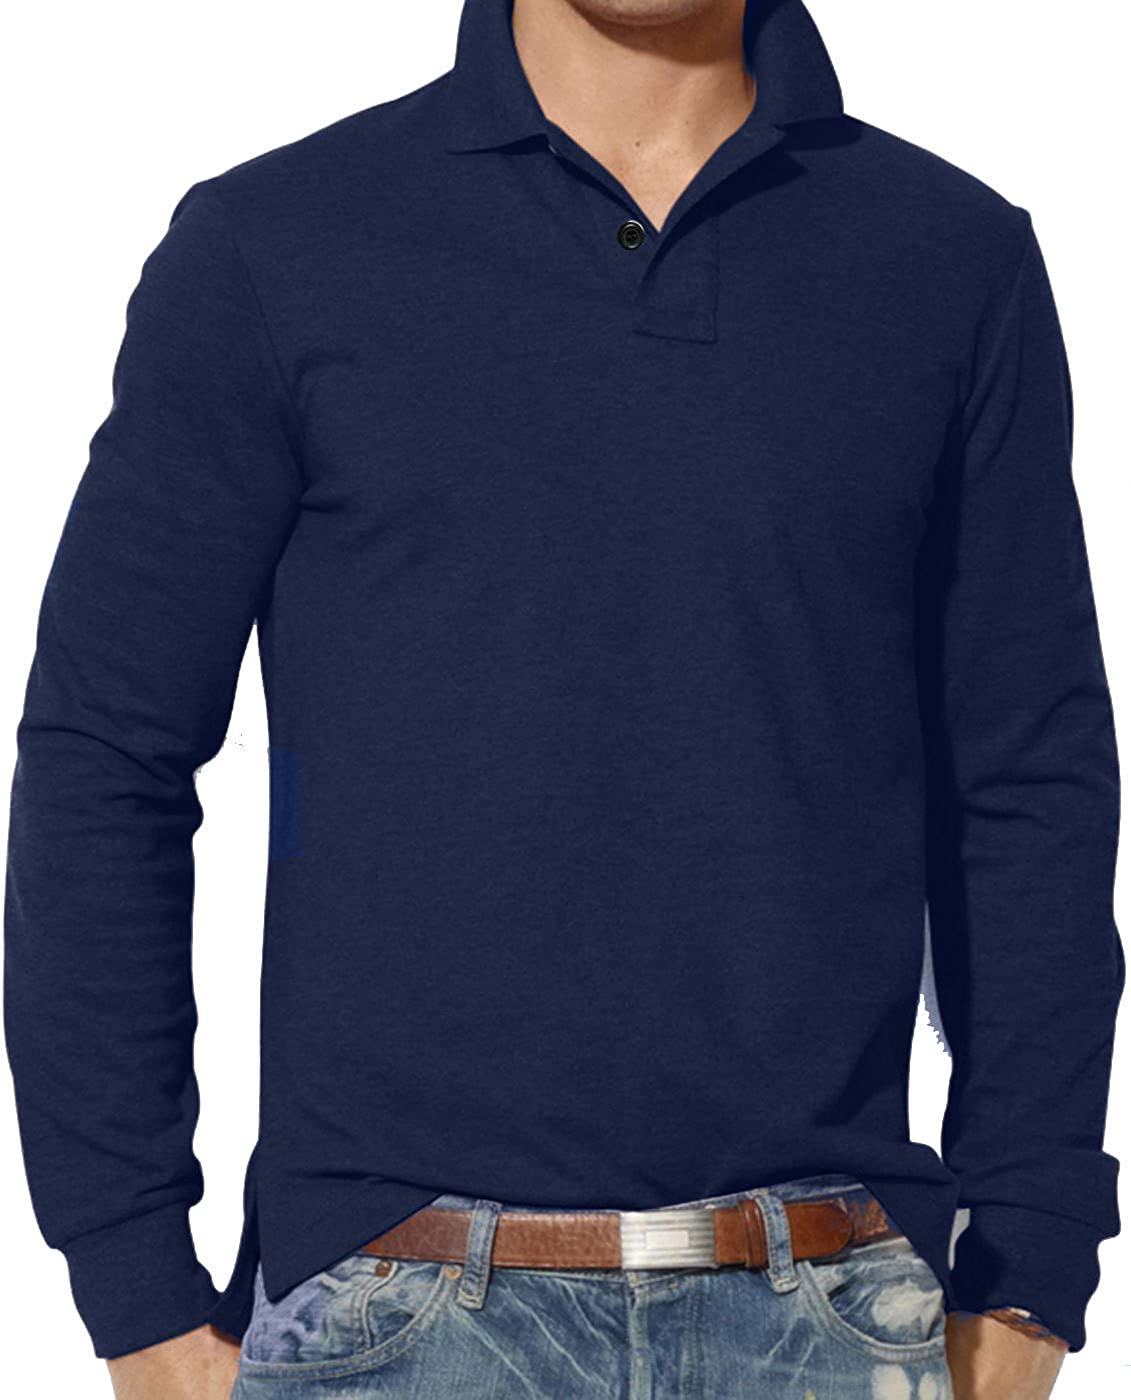 Mens Clothing Long Sleeve Plain Polo Shirt Custom Fit Top S M L XL 2XL 3XL